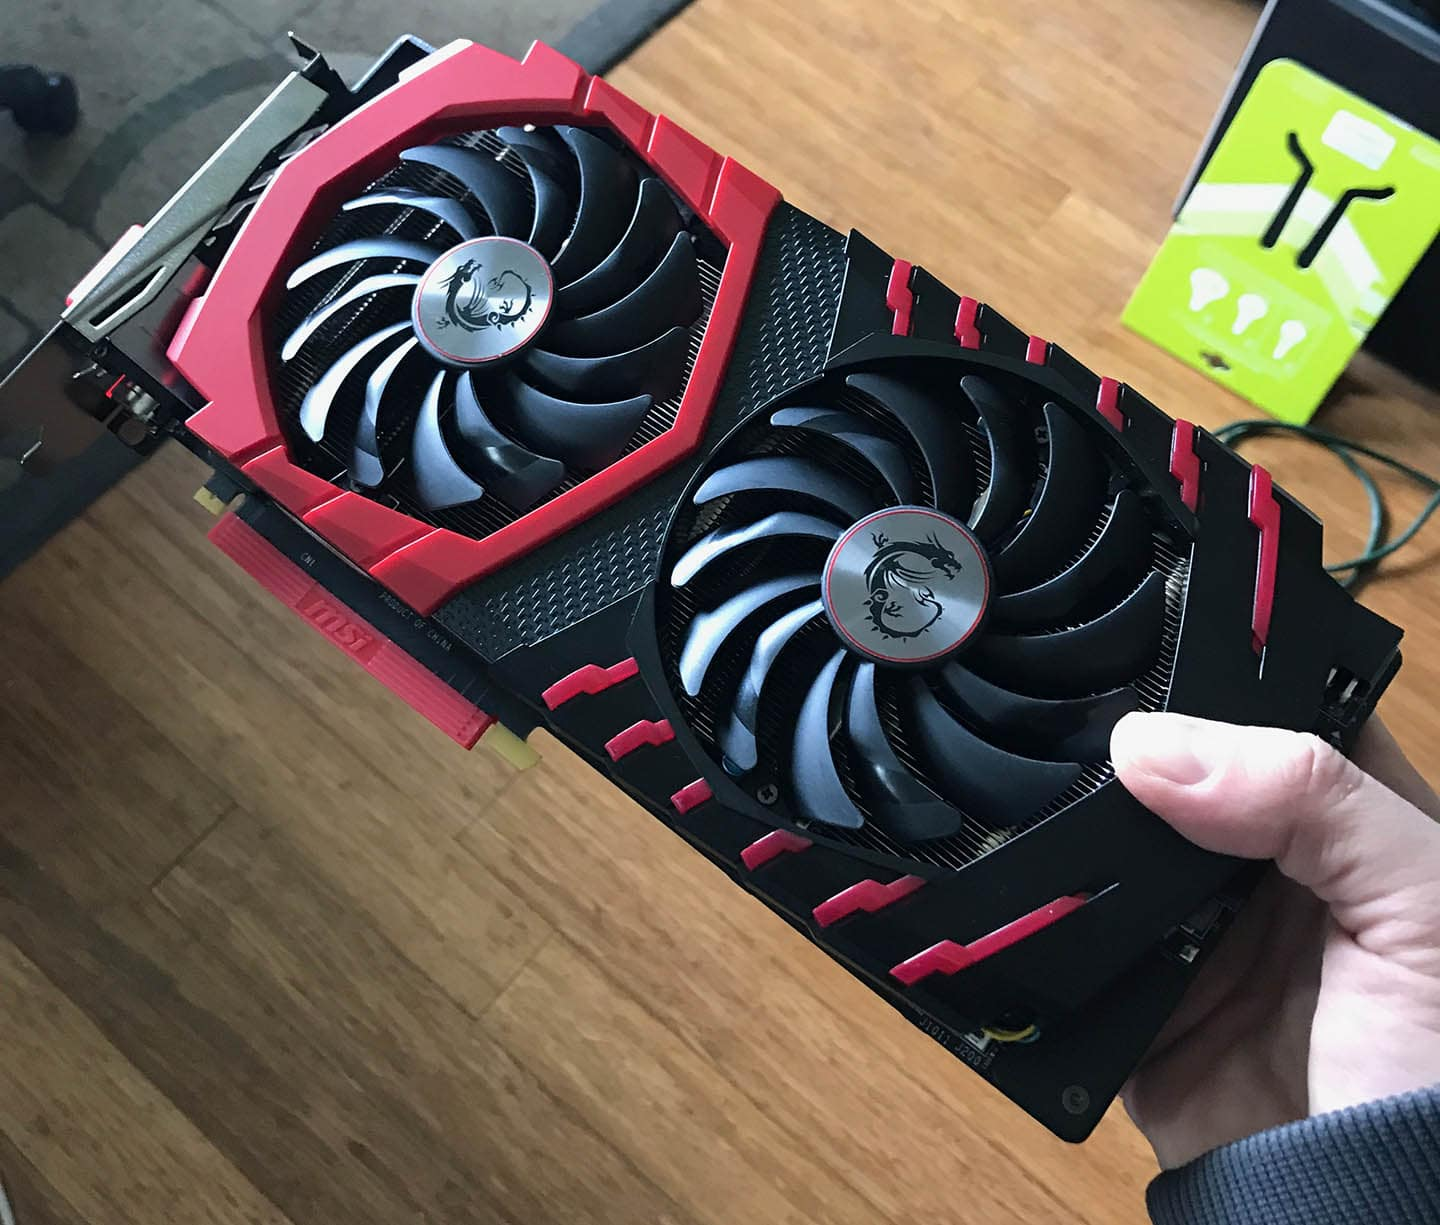 Installing a GeForce GTX 1060 / 1070 / 1080 into a Mac Pro